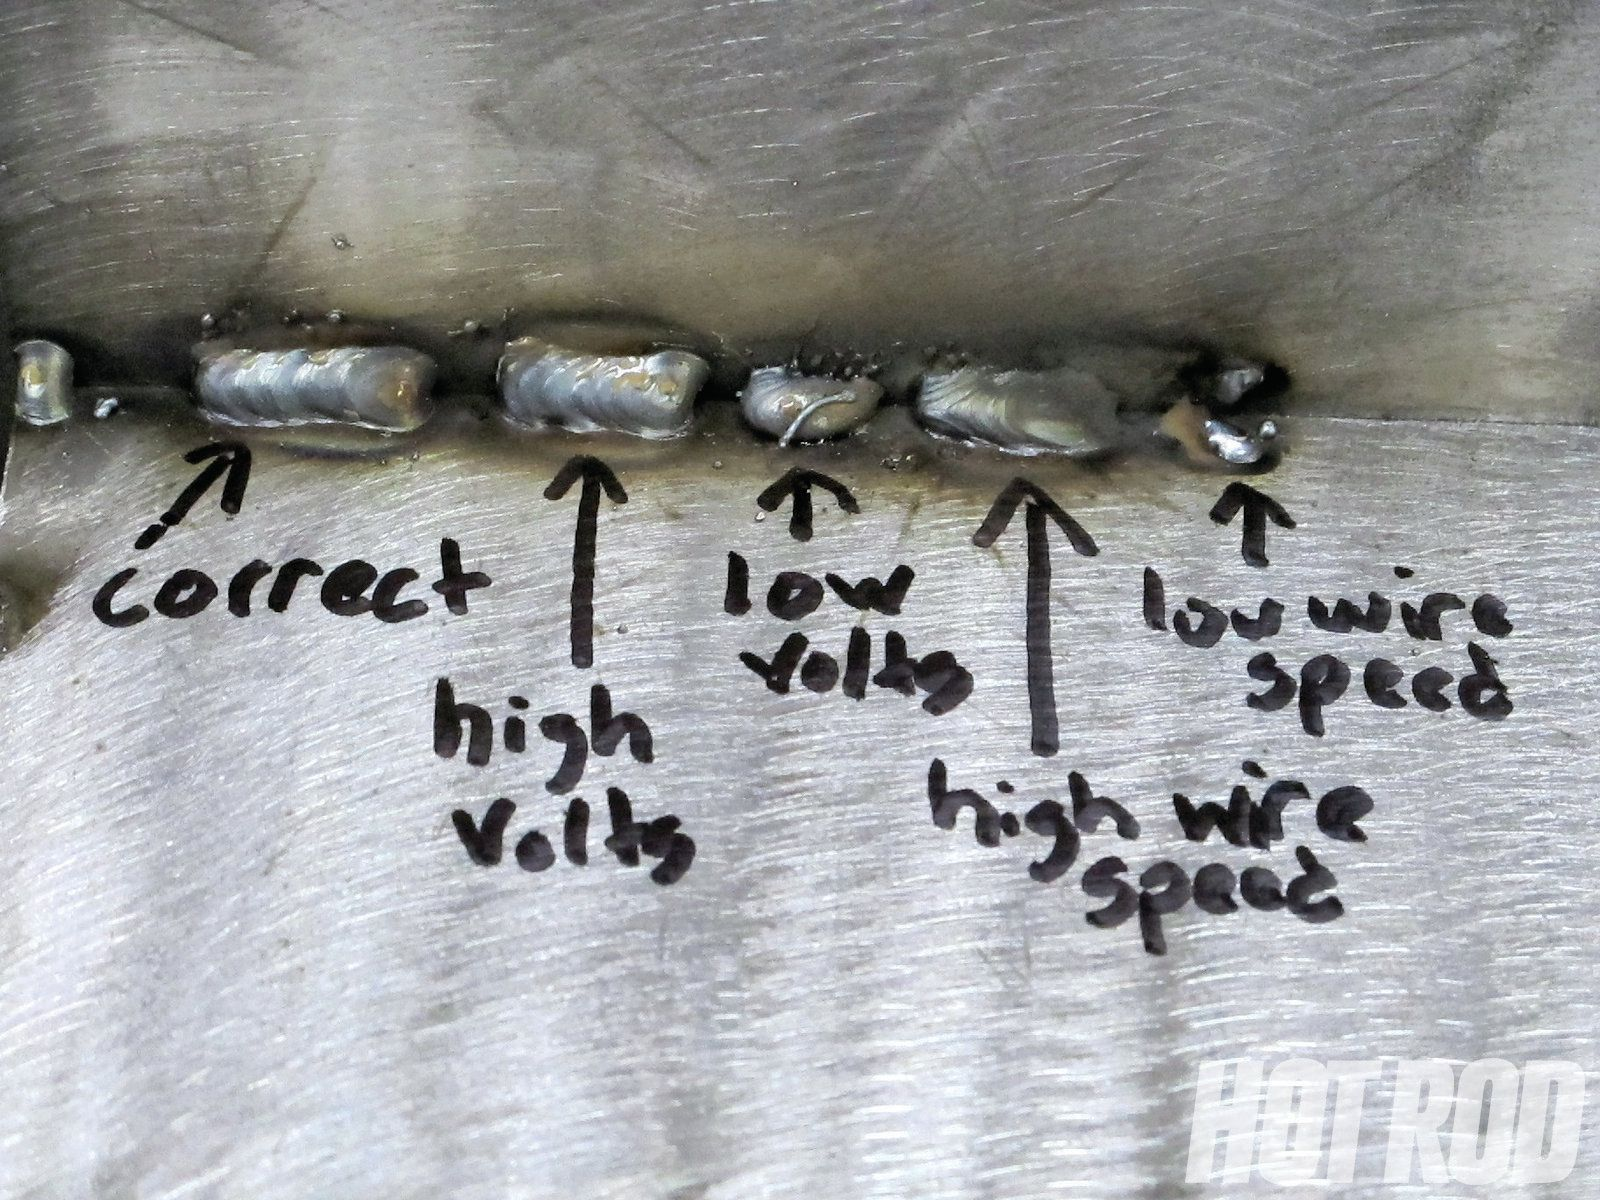 Troubleshoot your welds mig arc welding guide diy for Cool things to weld